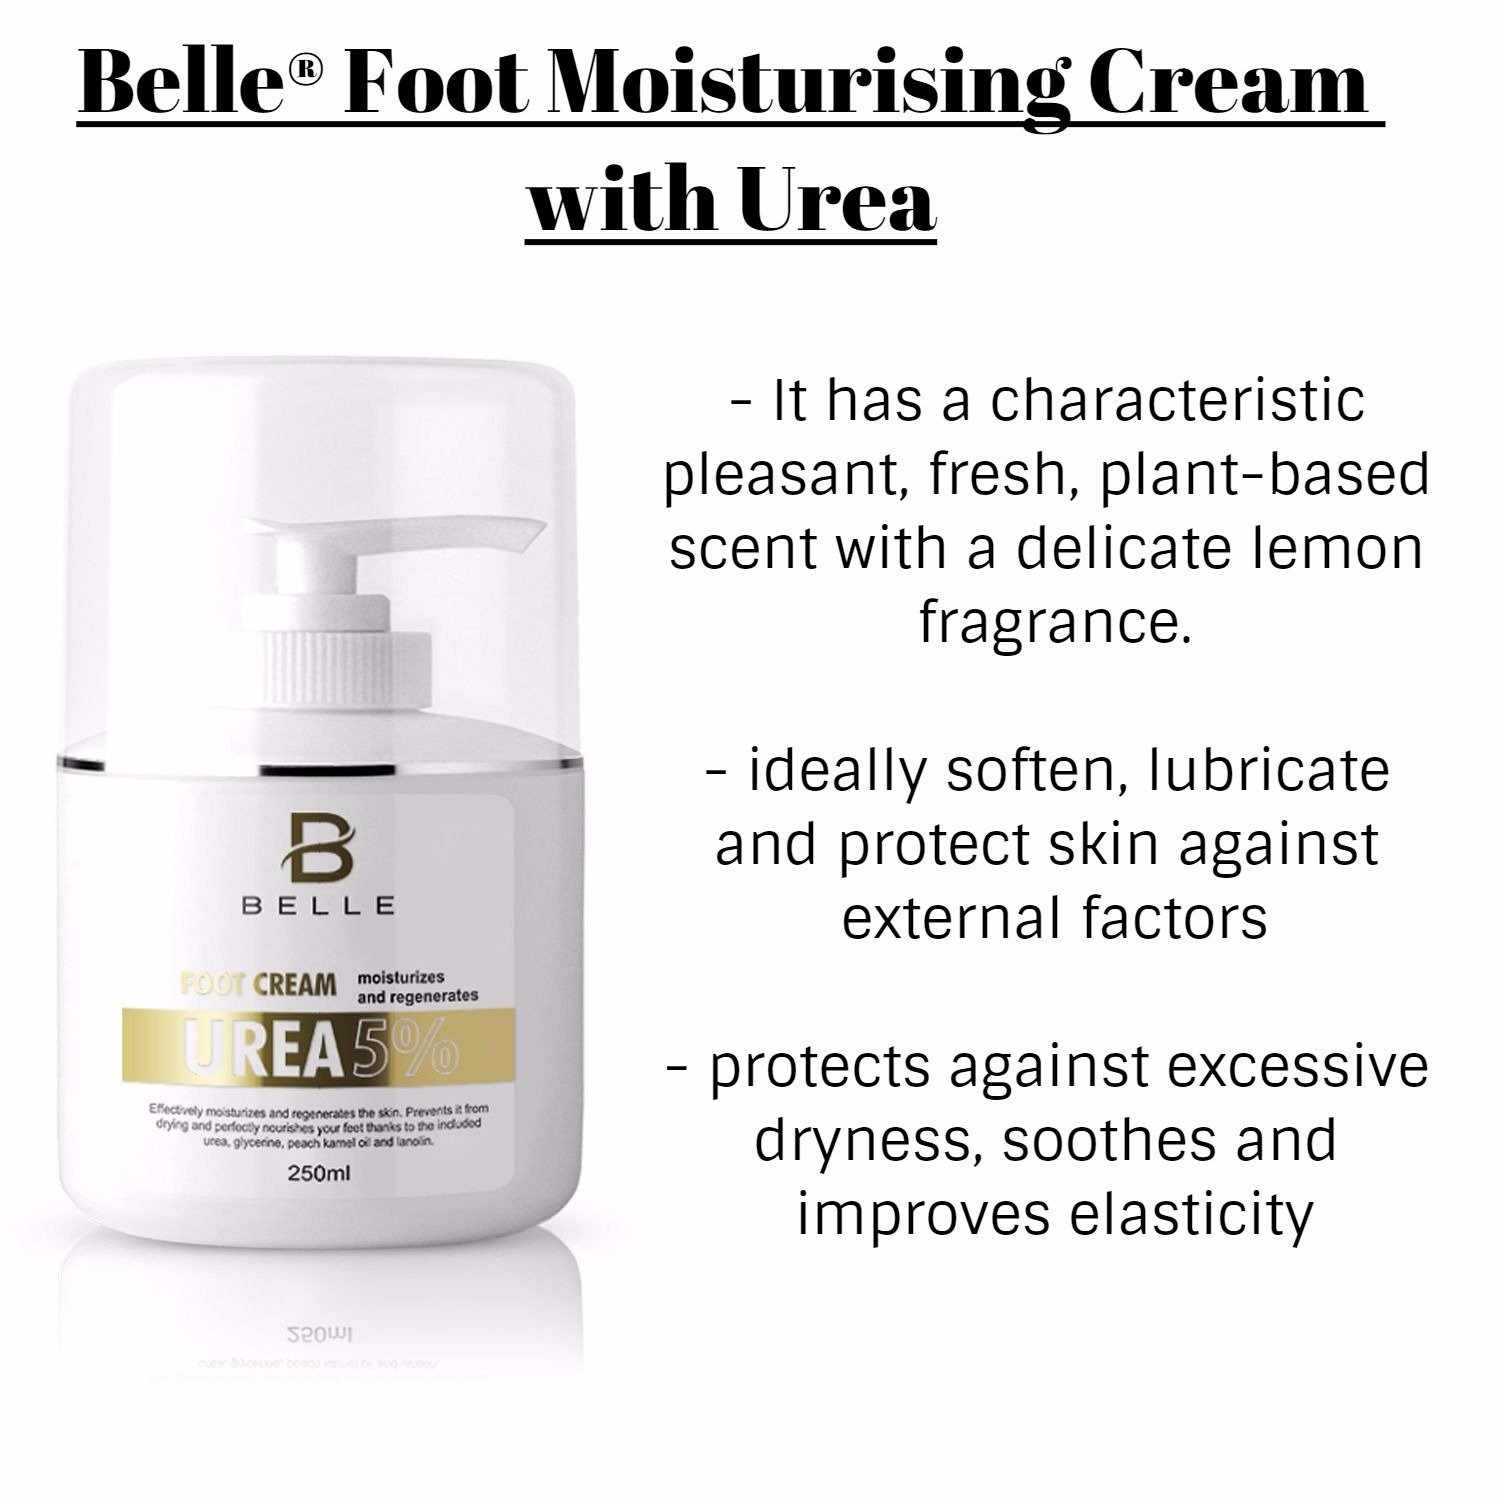 Belle® Foot Moisturising Cream with Urea - exfoliates, prevents drying, hardening and cracking of heels, softens and lubricates Foot - 250ml (5% urea)